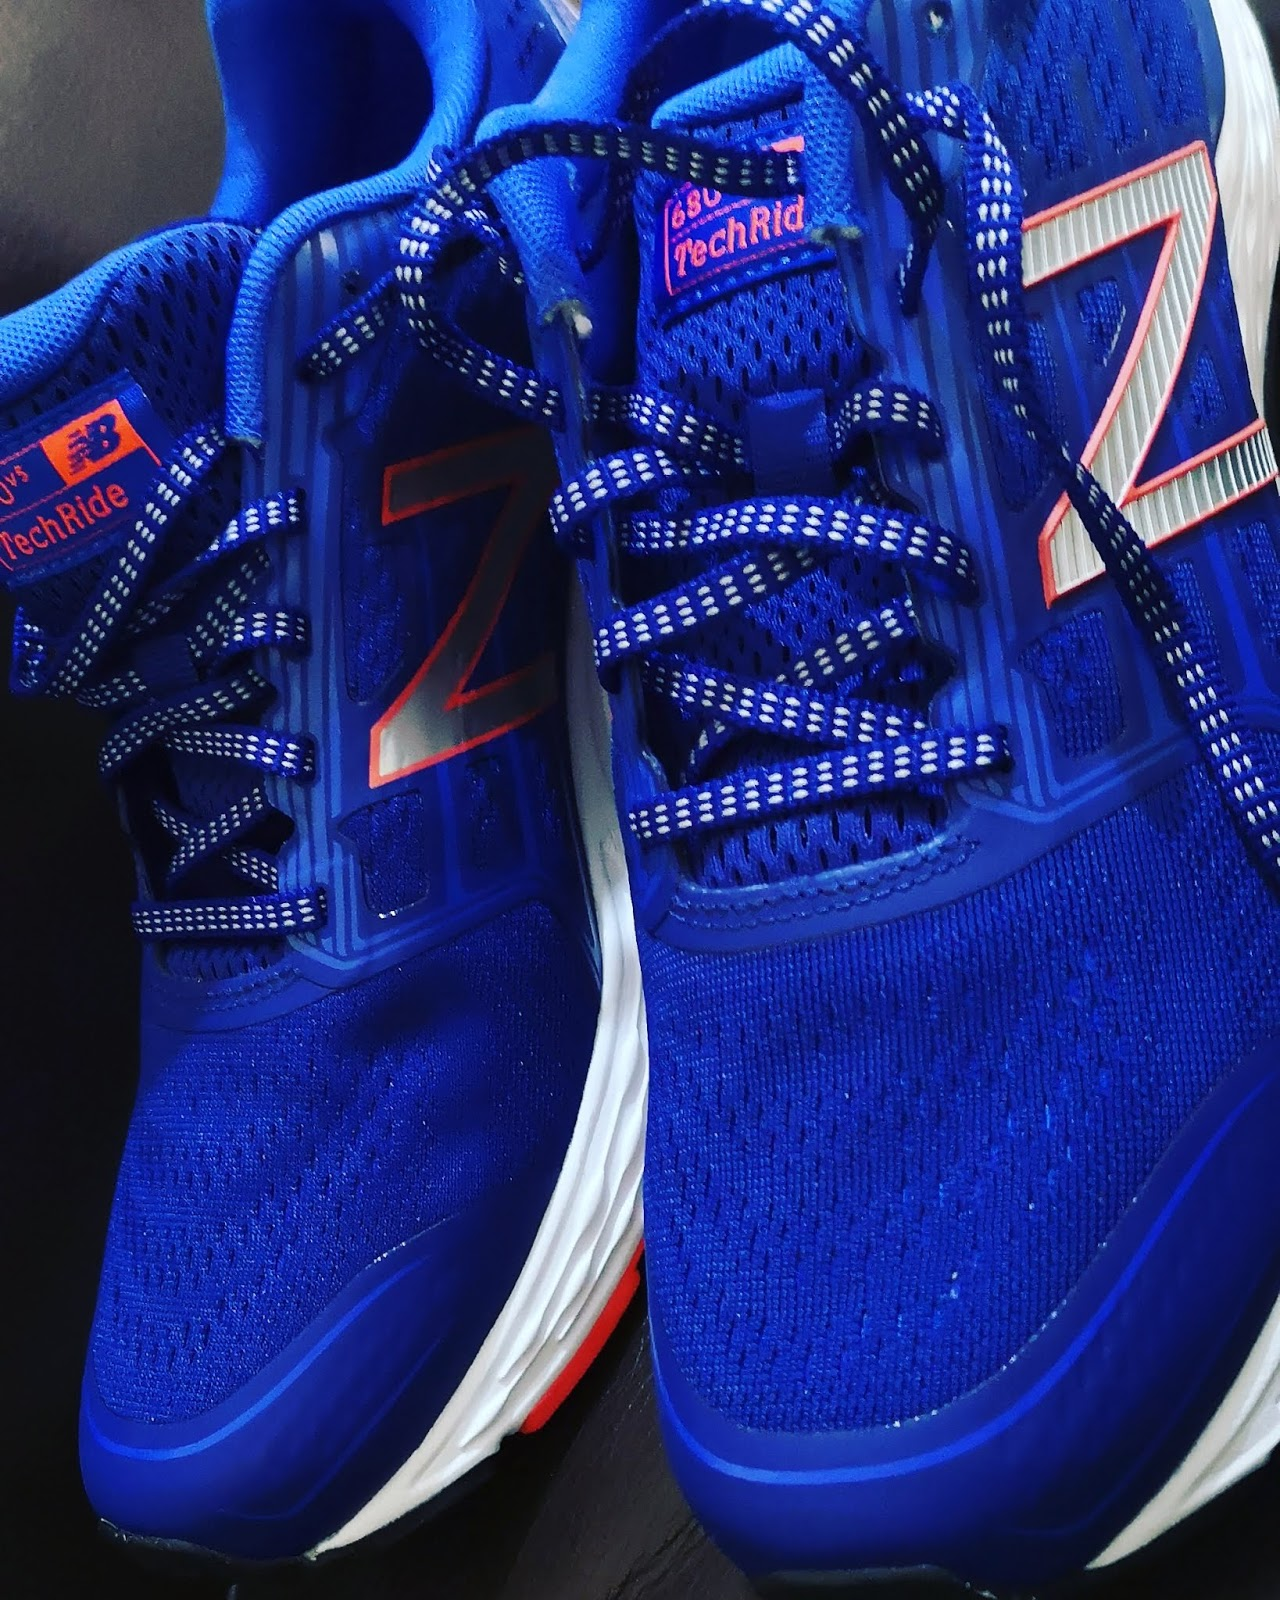 25129719d029 So I now have new running shoes. They are obviously the reason for my best  time yet for 4k. And my blisters. But, in seriousness they're much better  than my ...